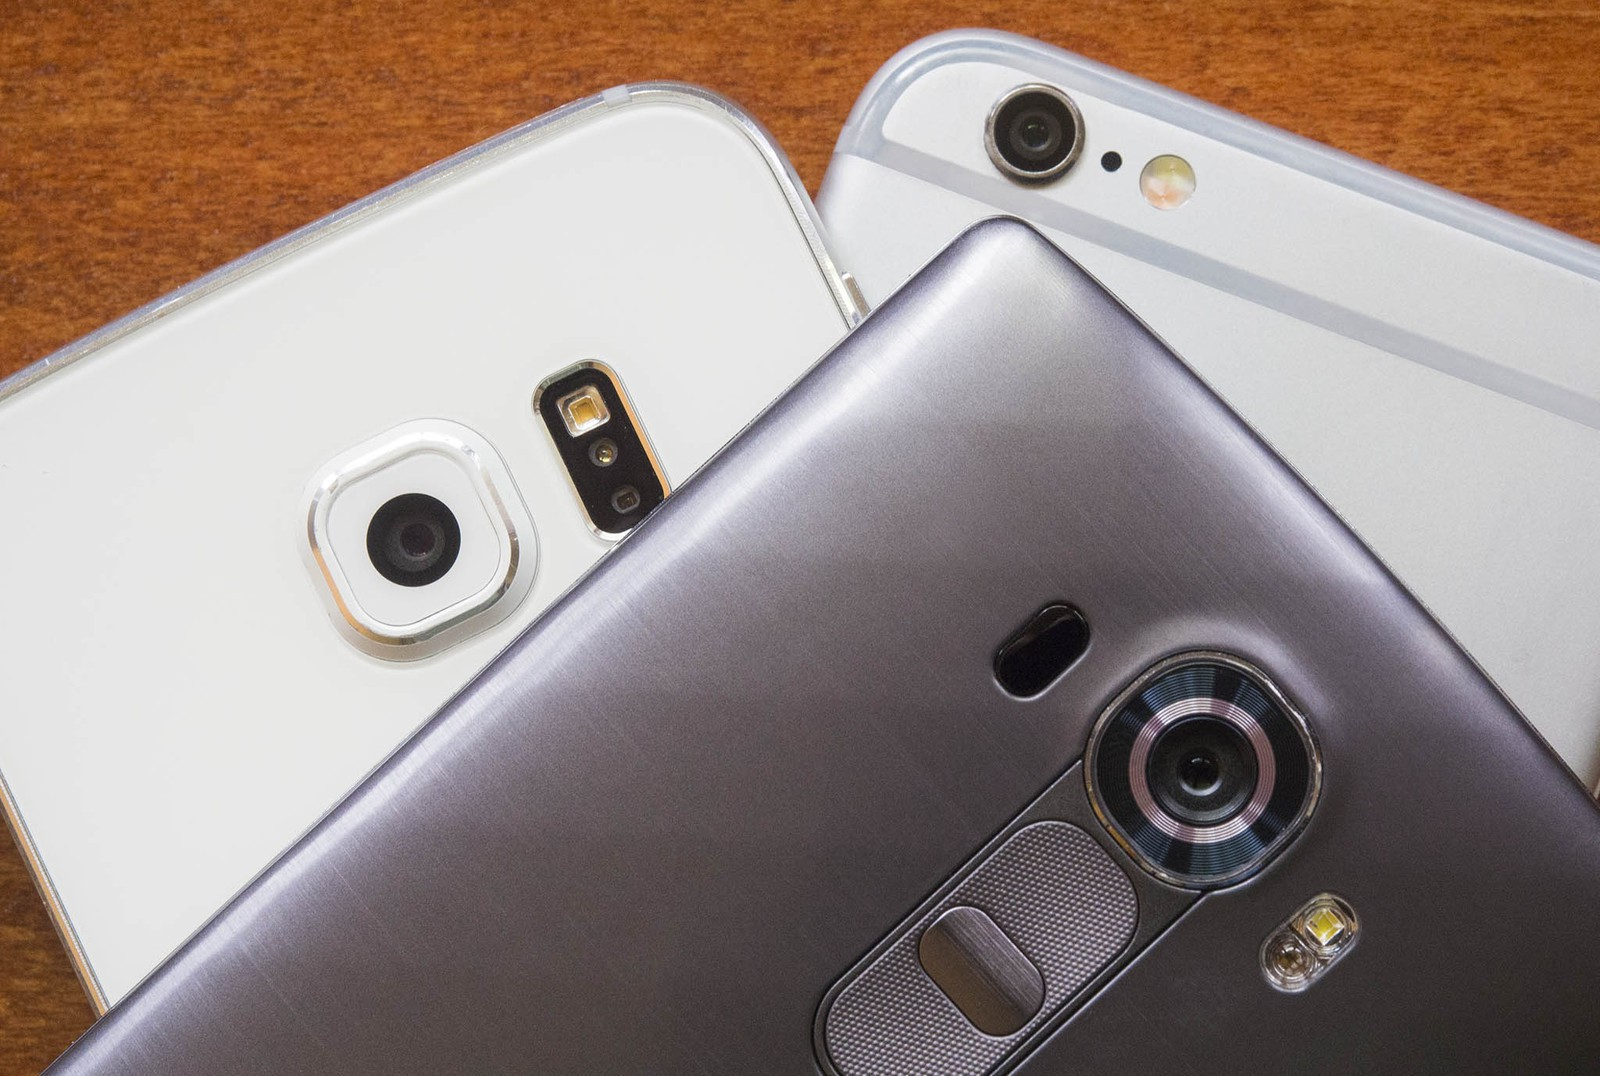 iPhone 6S Vs Galaxy S6 e LG G4 Fotocamere a confronto